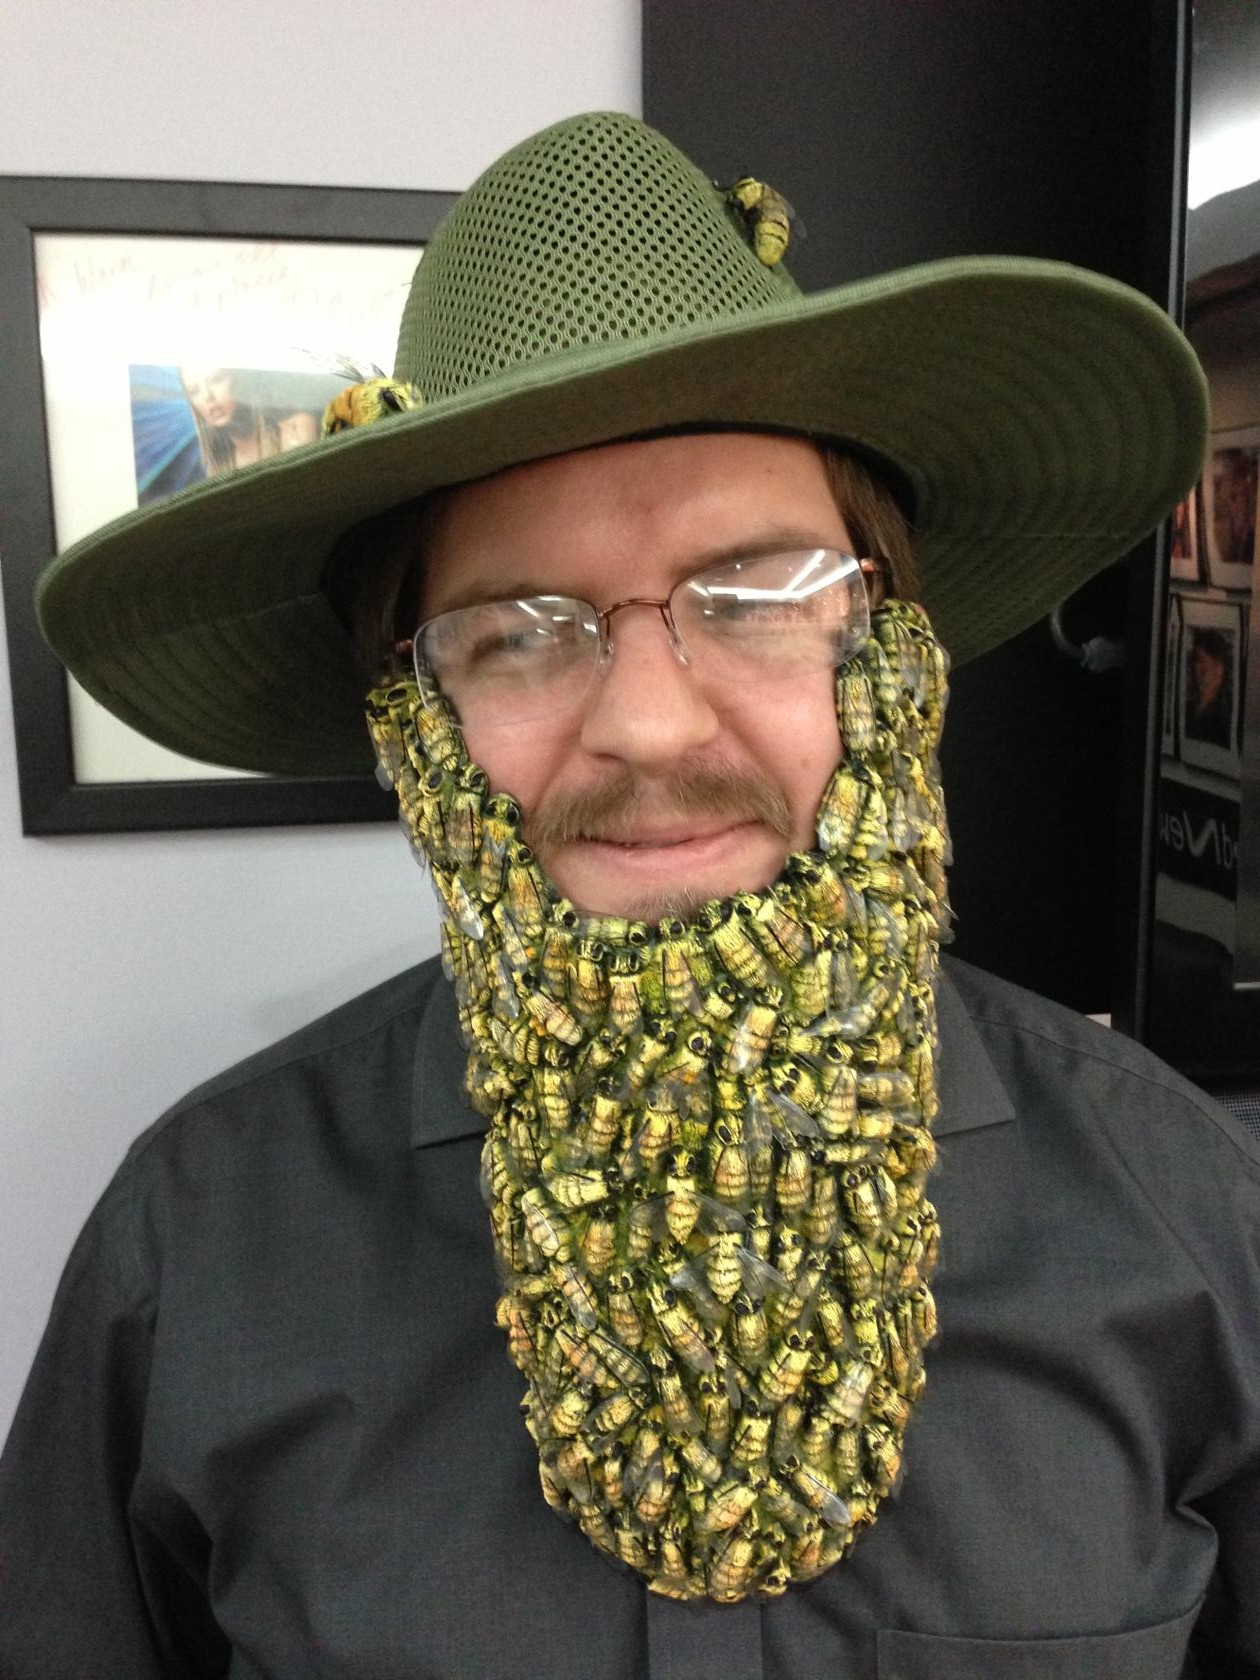 Picture of Beard of Bees Costume